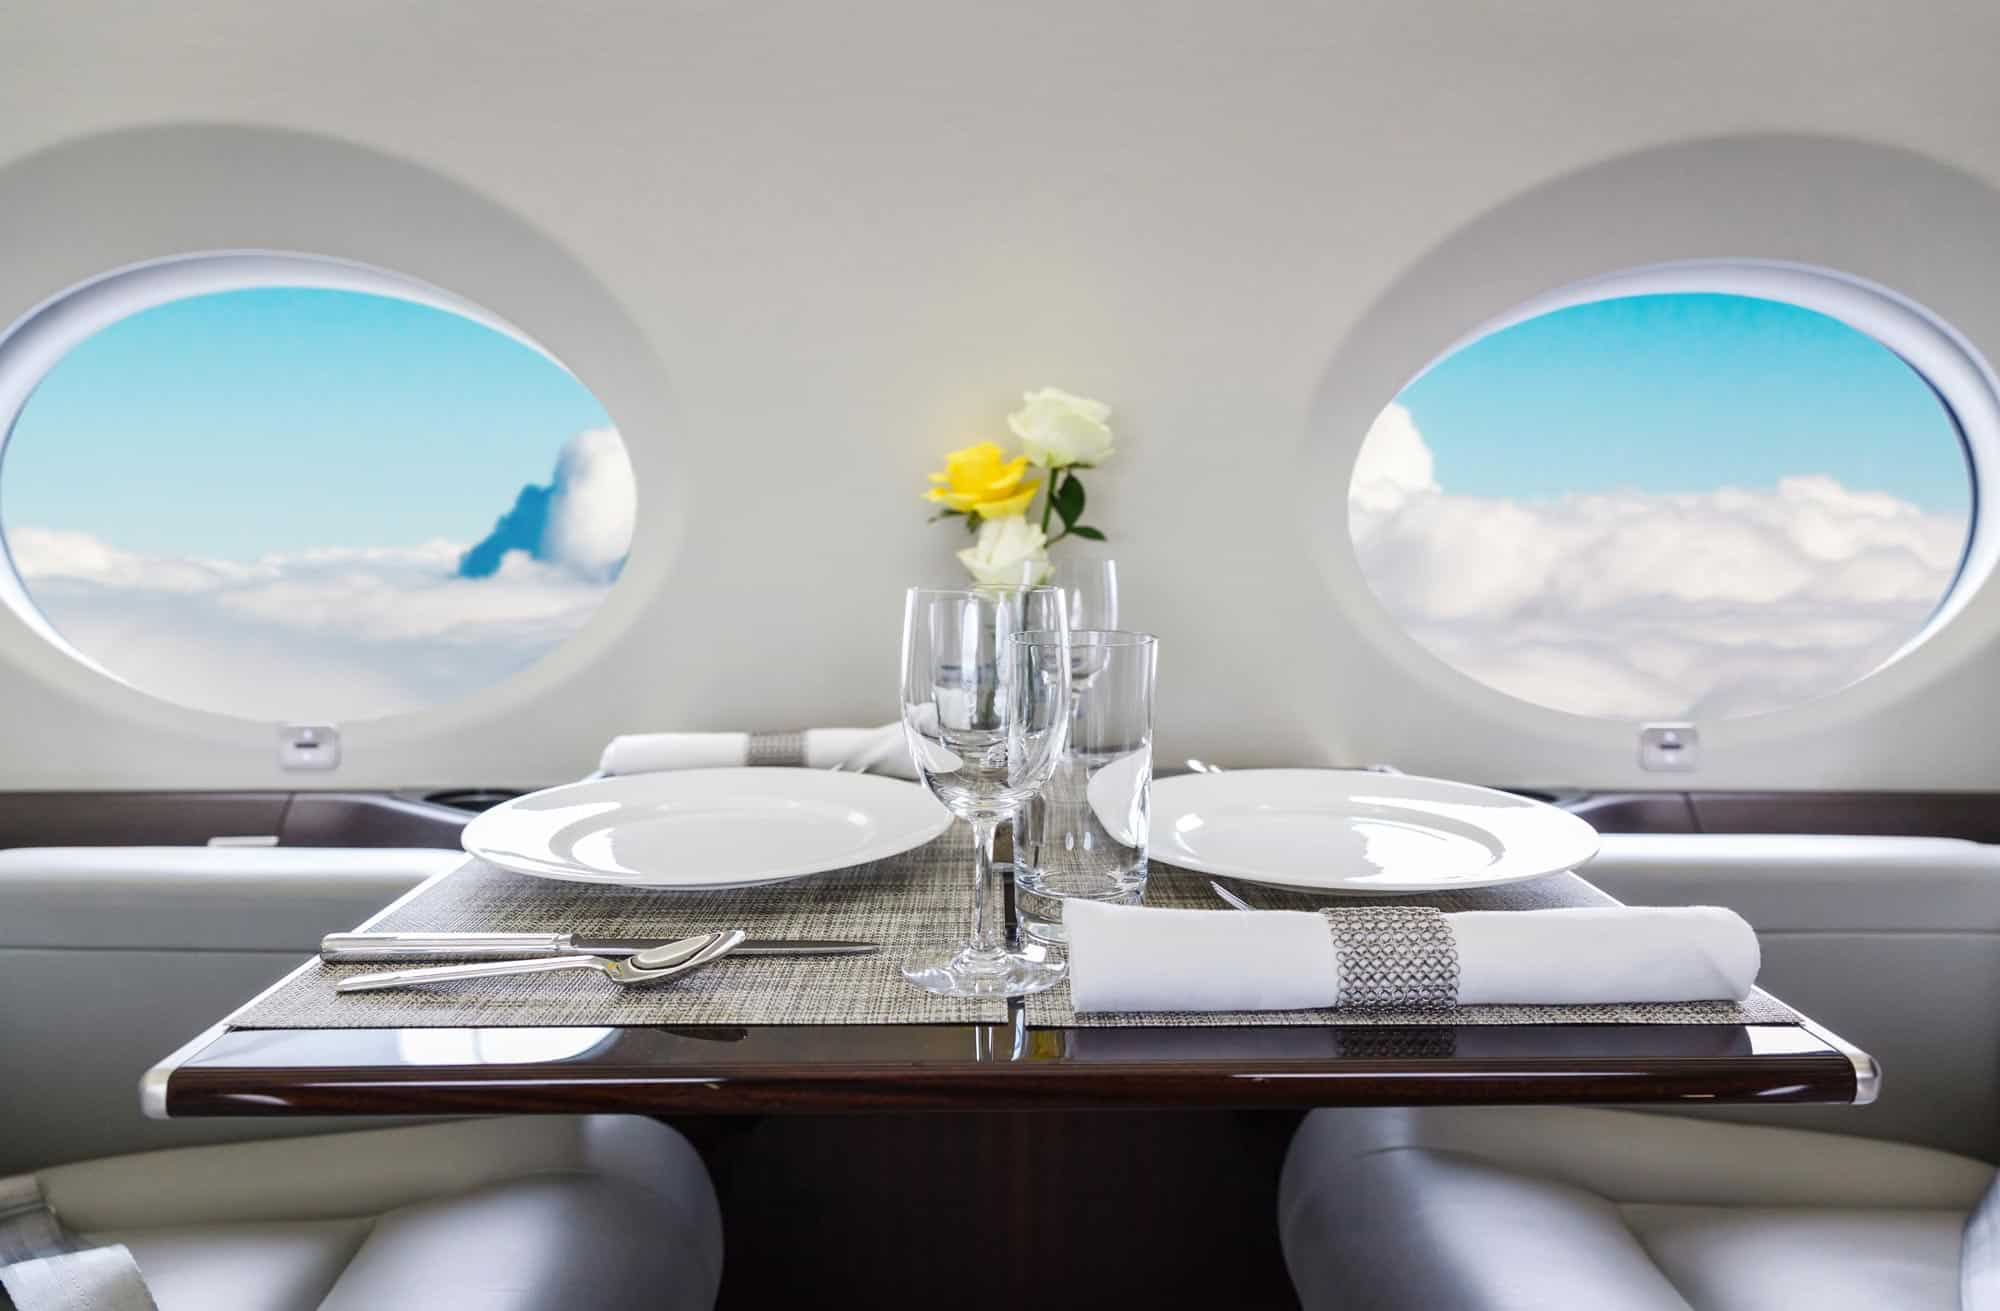 Valentine's Day on a Private Jet